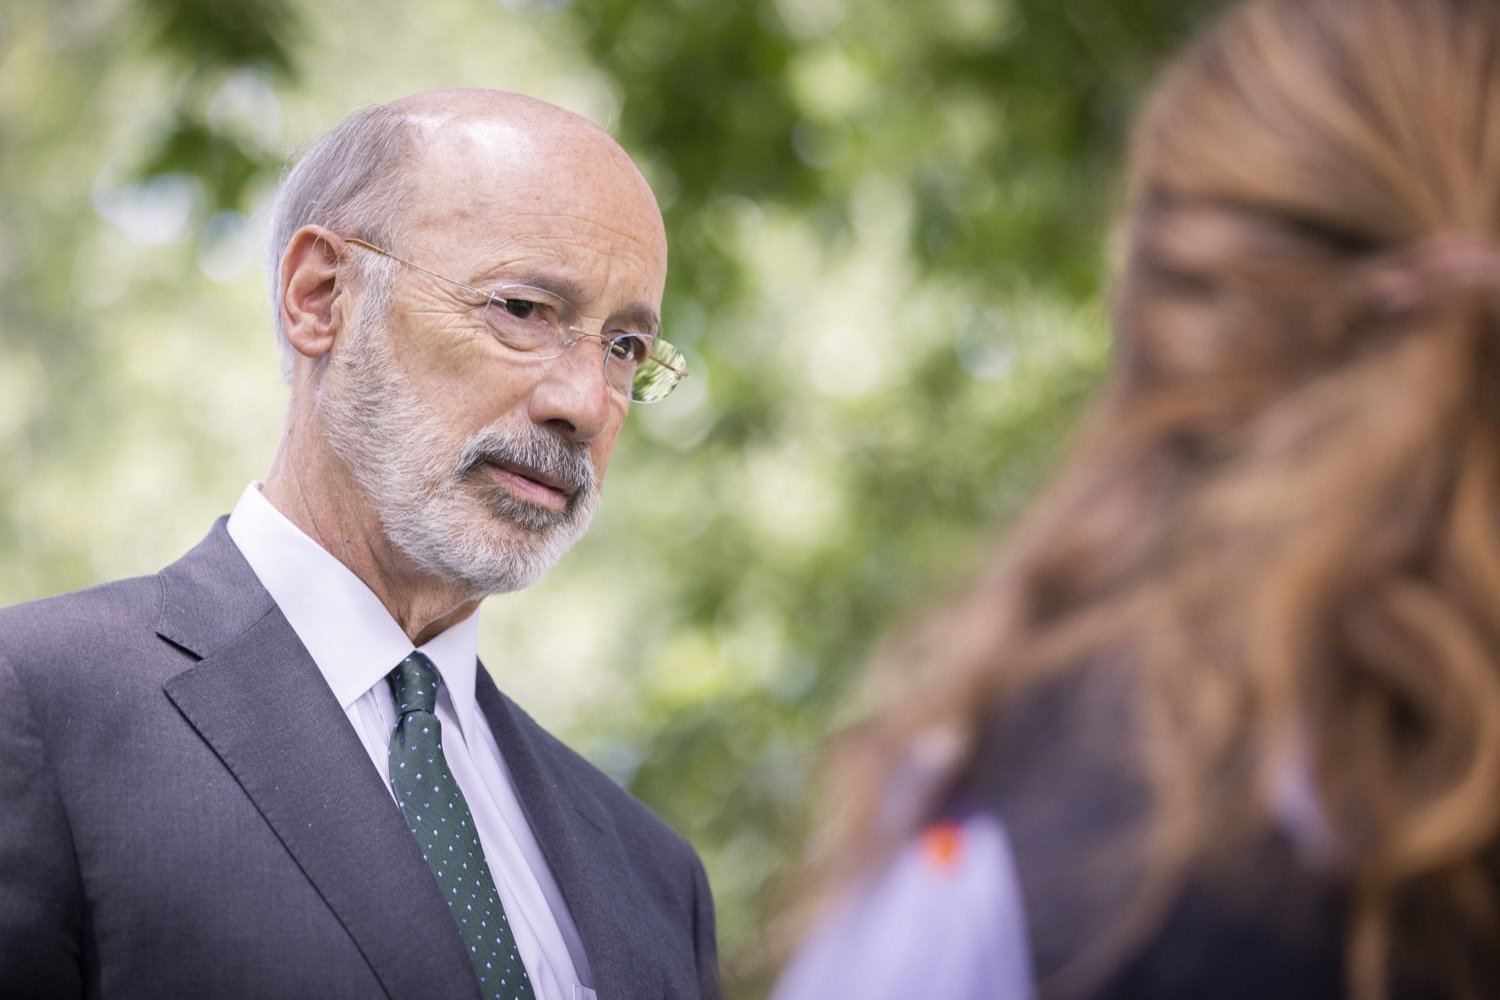 """<a href=""""https://filesource.wostreaming.net/commonwealthofpa/photo/18819_gov_reprodRights_dz_016.jpg"""" target=""""_blank"""">⇣Download Photo<br></a>Pennsylvania Governor Tom Wolf speaking with event atendees.  Governor Wolf will discuss proposed anti-choice legislation that is moving through the House of Representatives and reaffirm that he will veto this damaging legislation.  JUNE 10, 2021 - PHILADELPHIA, PA"""